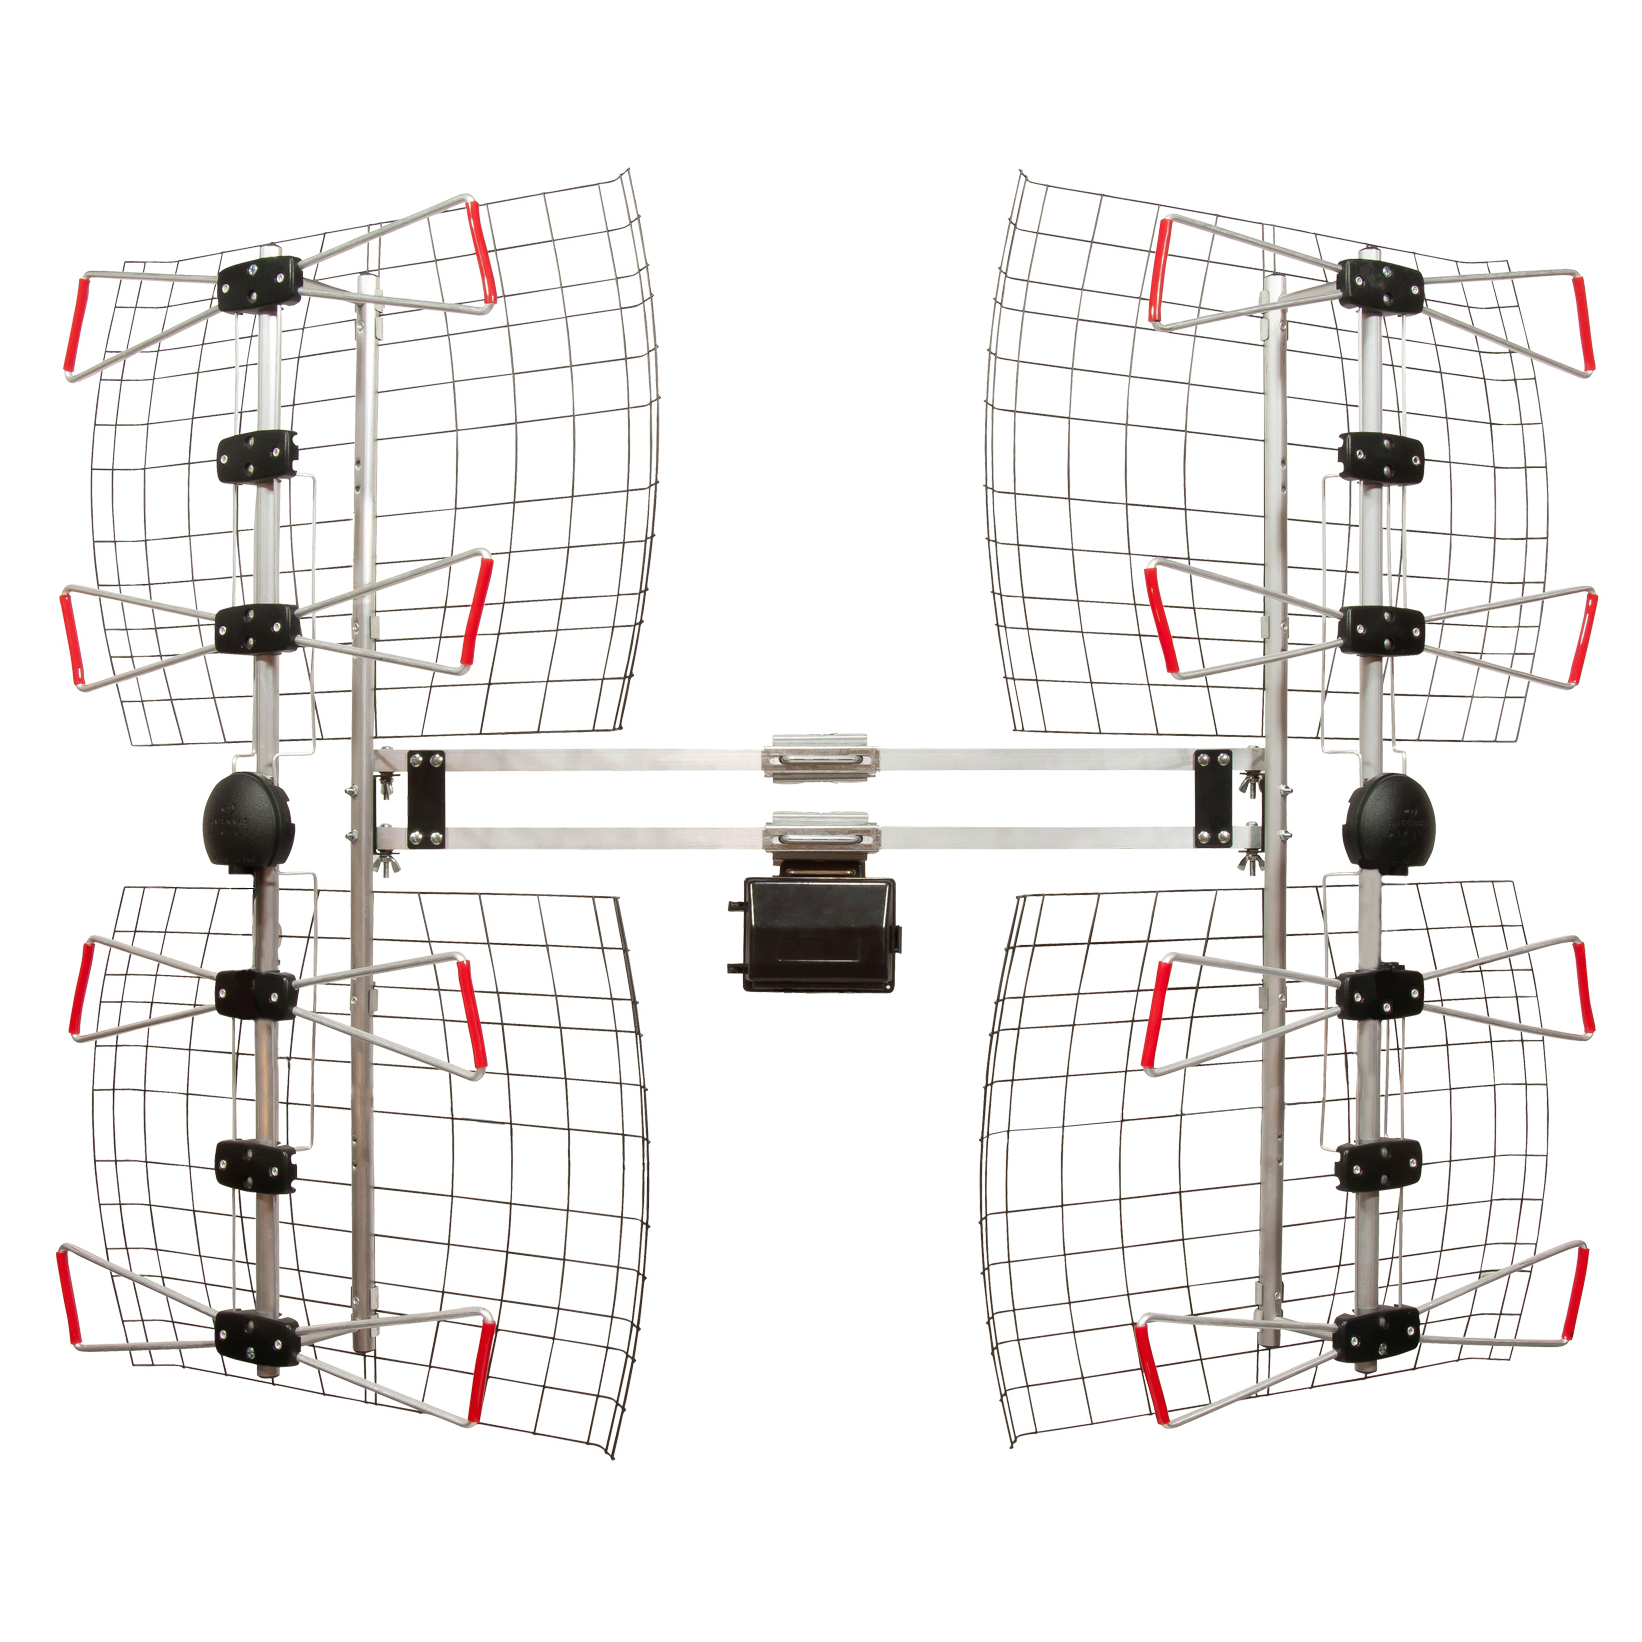 The World's Most Powerful Multi-Directional Antenna in the